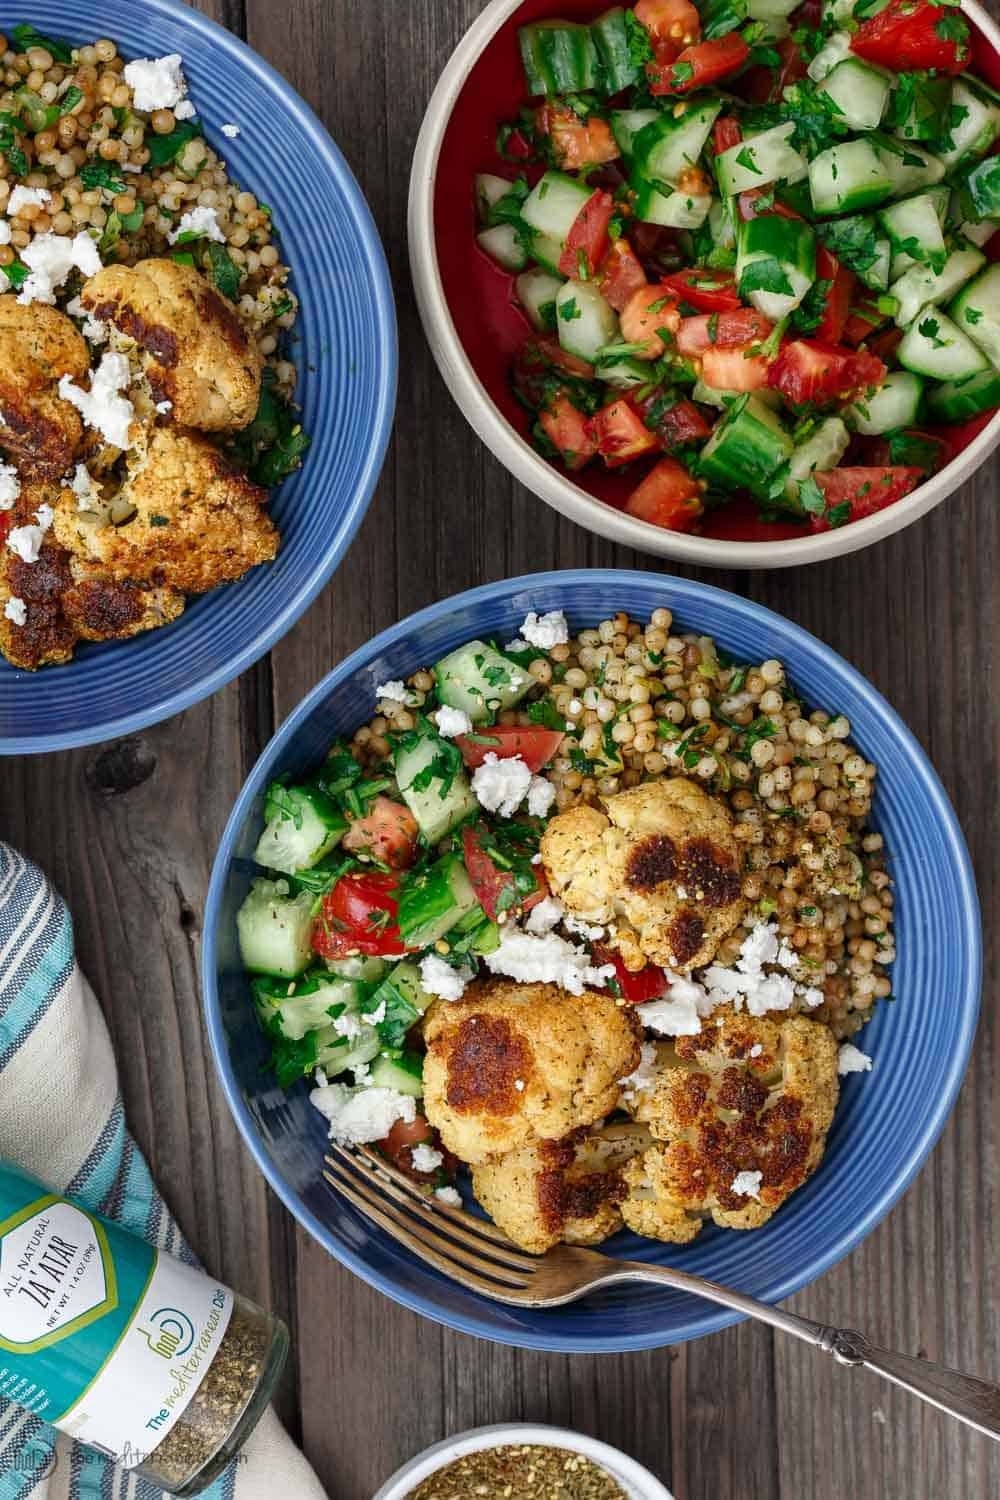 Herbed Couscous and cauliflower served with a cucumber and tomato salad